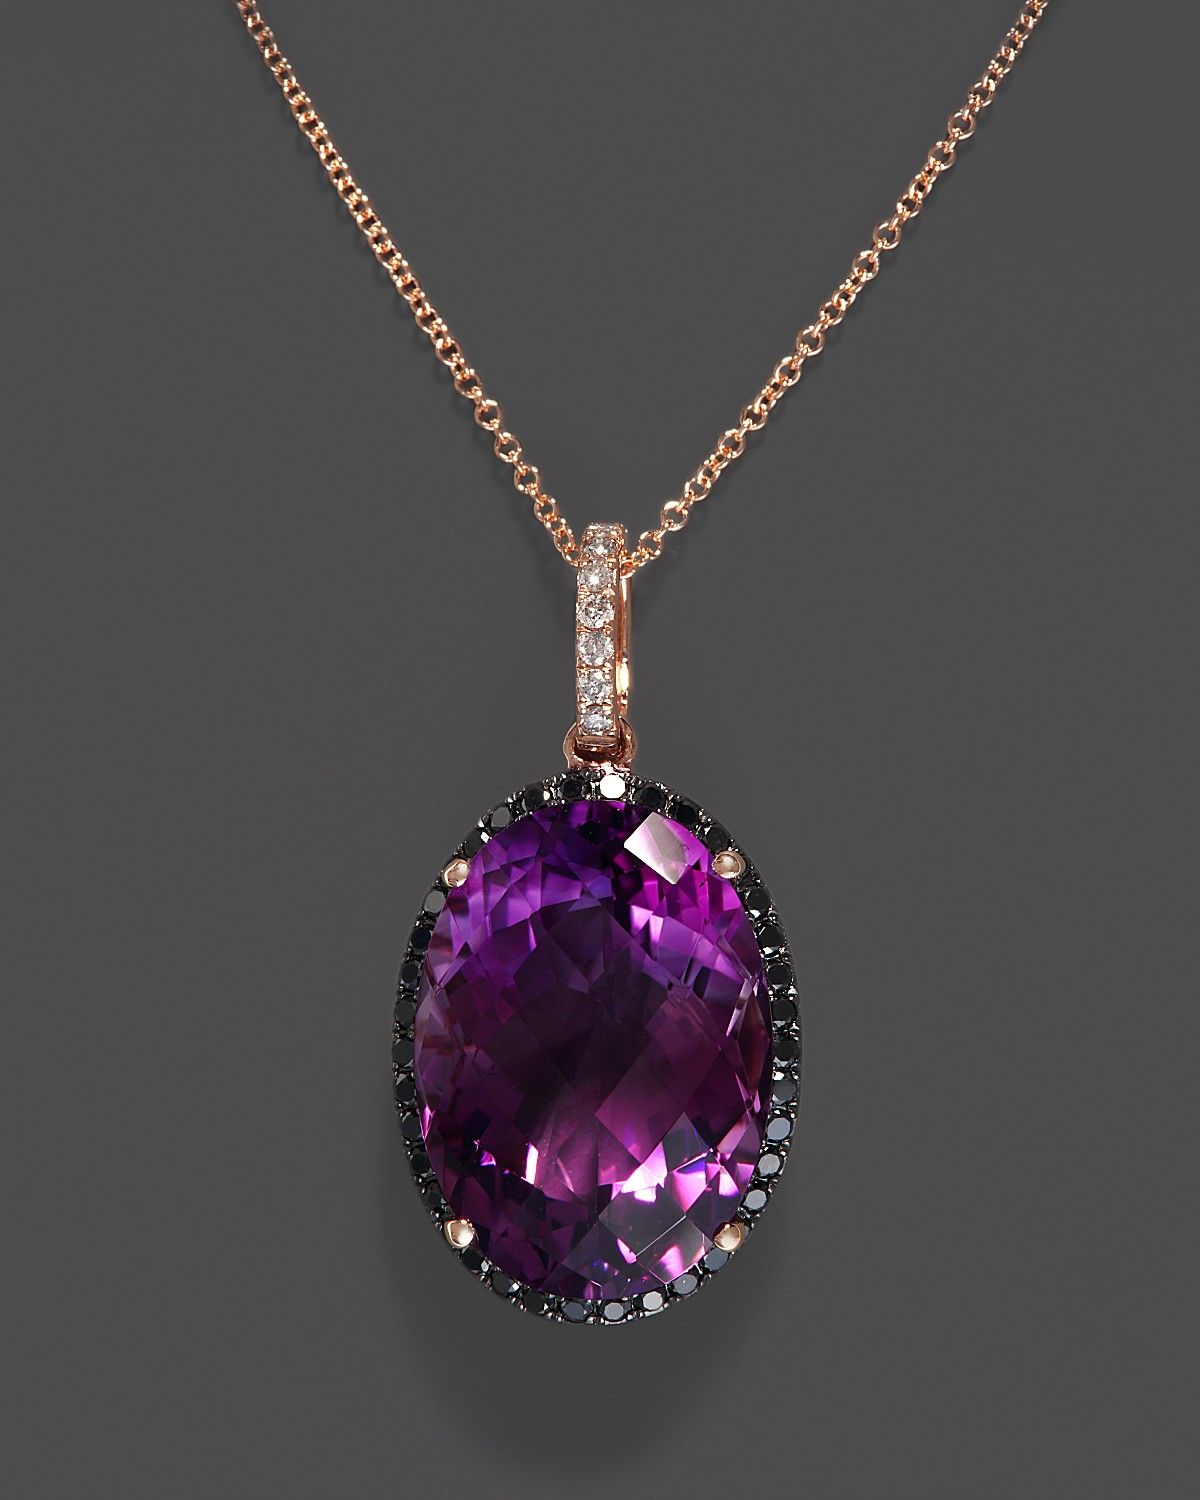 Amethyst Pendant Necklace With Black And White Diamonds In 14k Rose Gold 18 Fine Jewelry Bloomingdale S Purple Jewelry Amethyst Necklace Pendant Amethyst Pendant